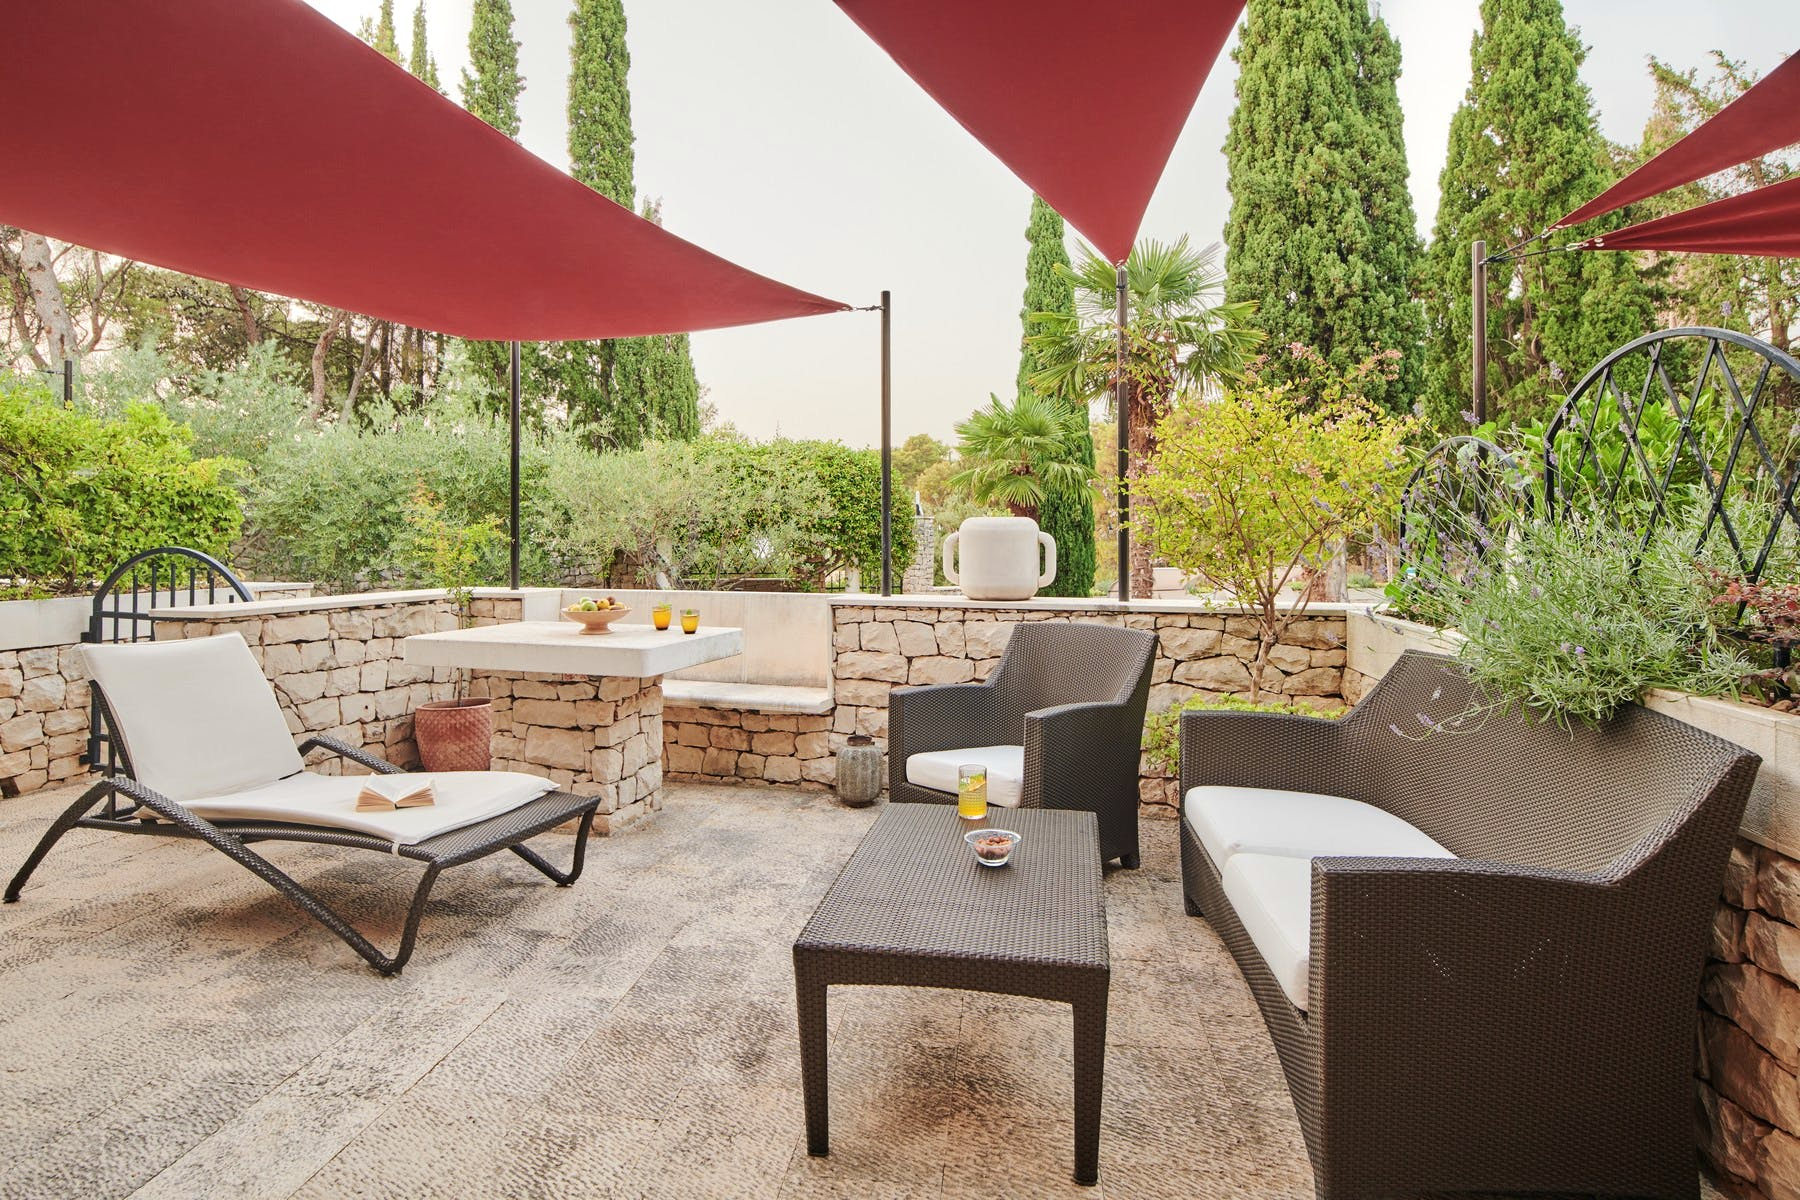 Spacious outdoor terrace surrounded by lush greenery